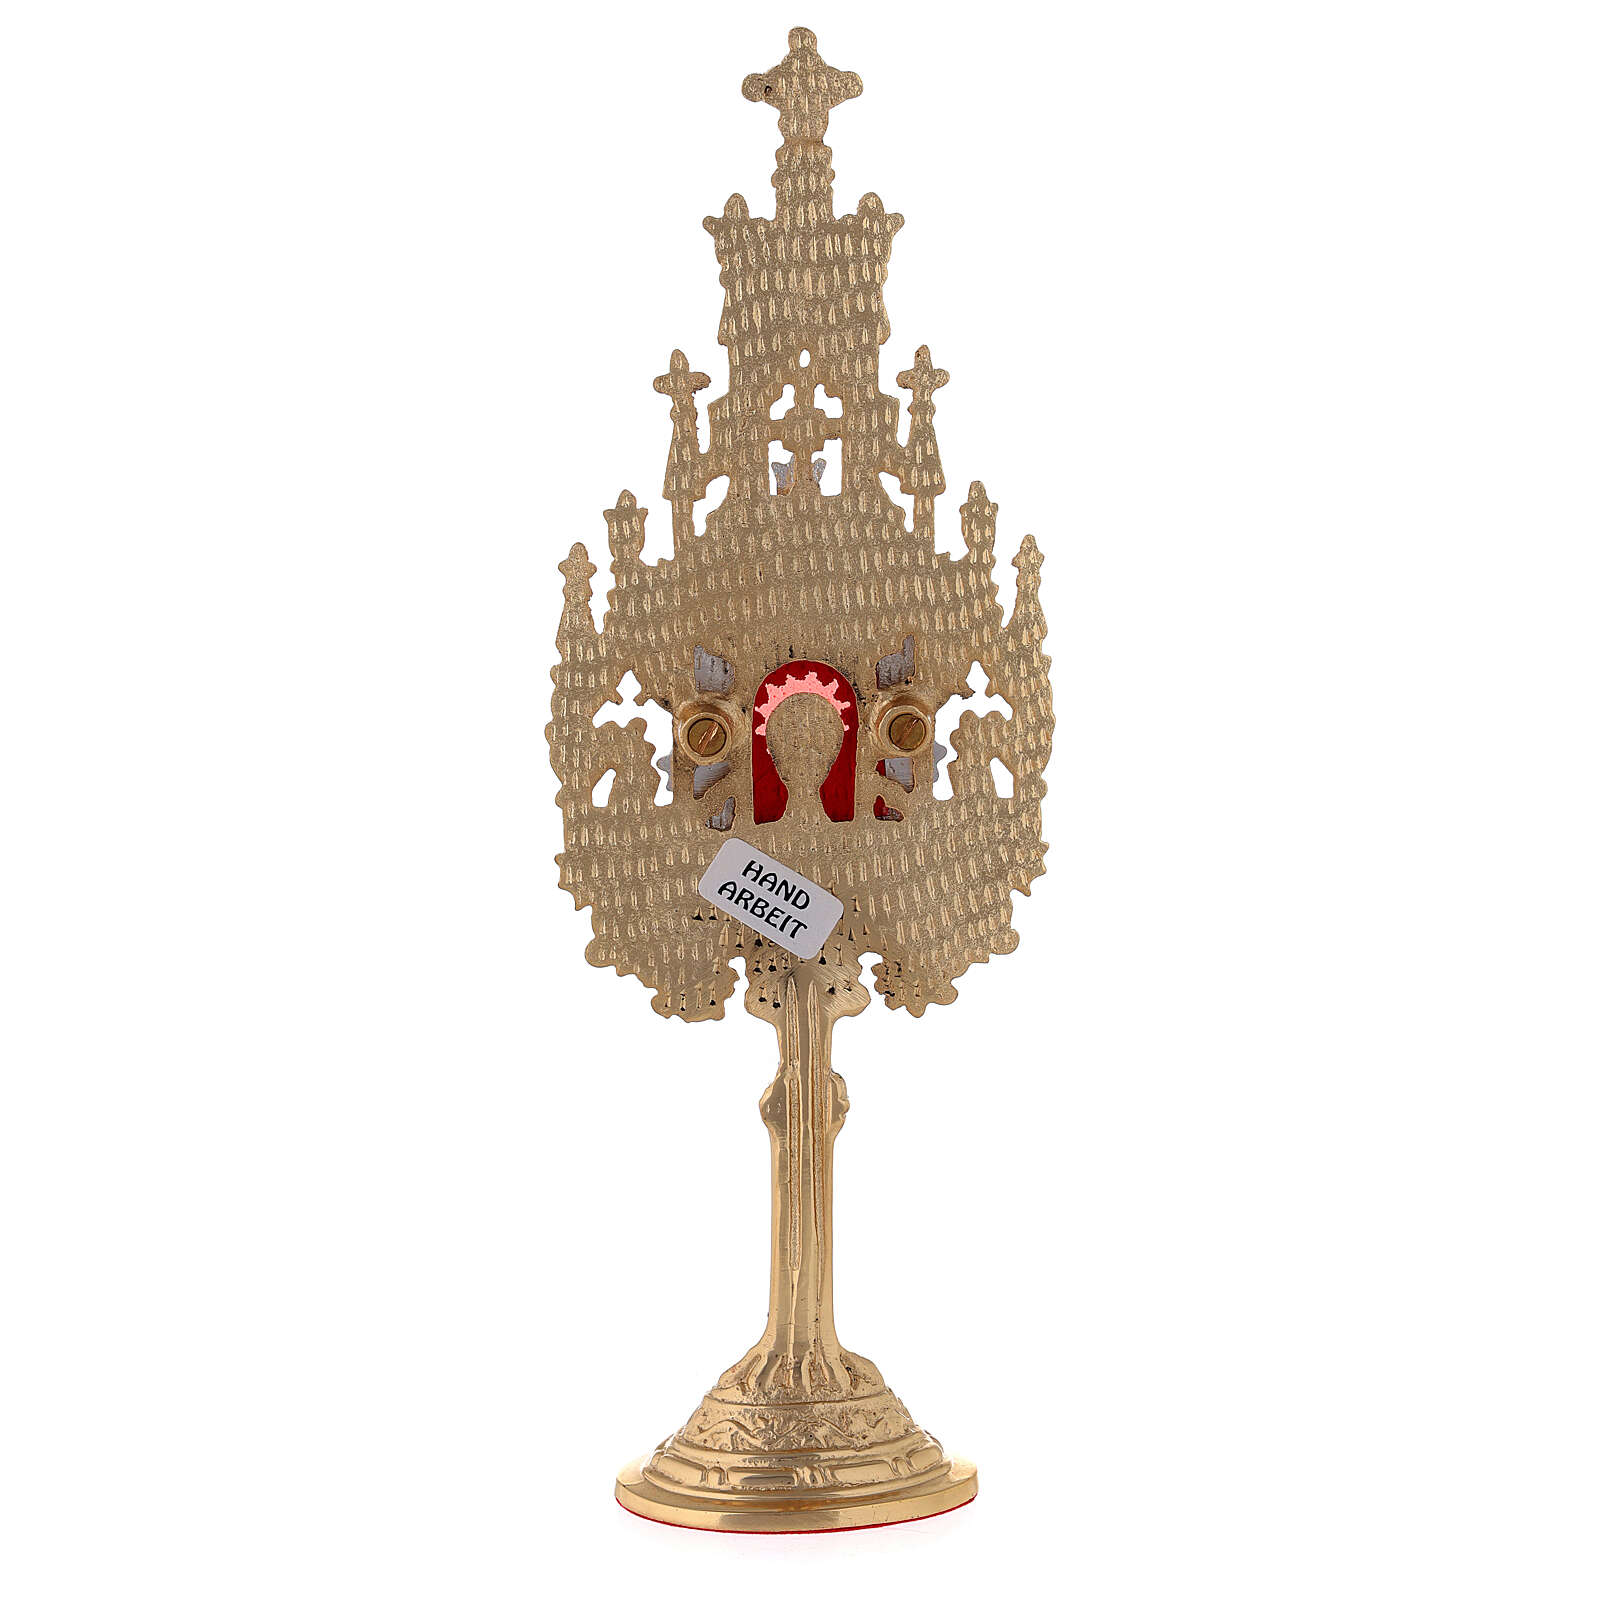 Neogothic mini reliquary in gold and silver-plated brass h 9 in 4